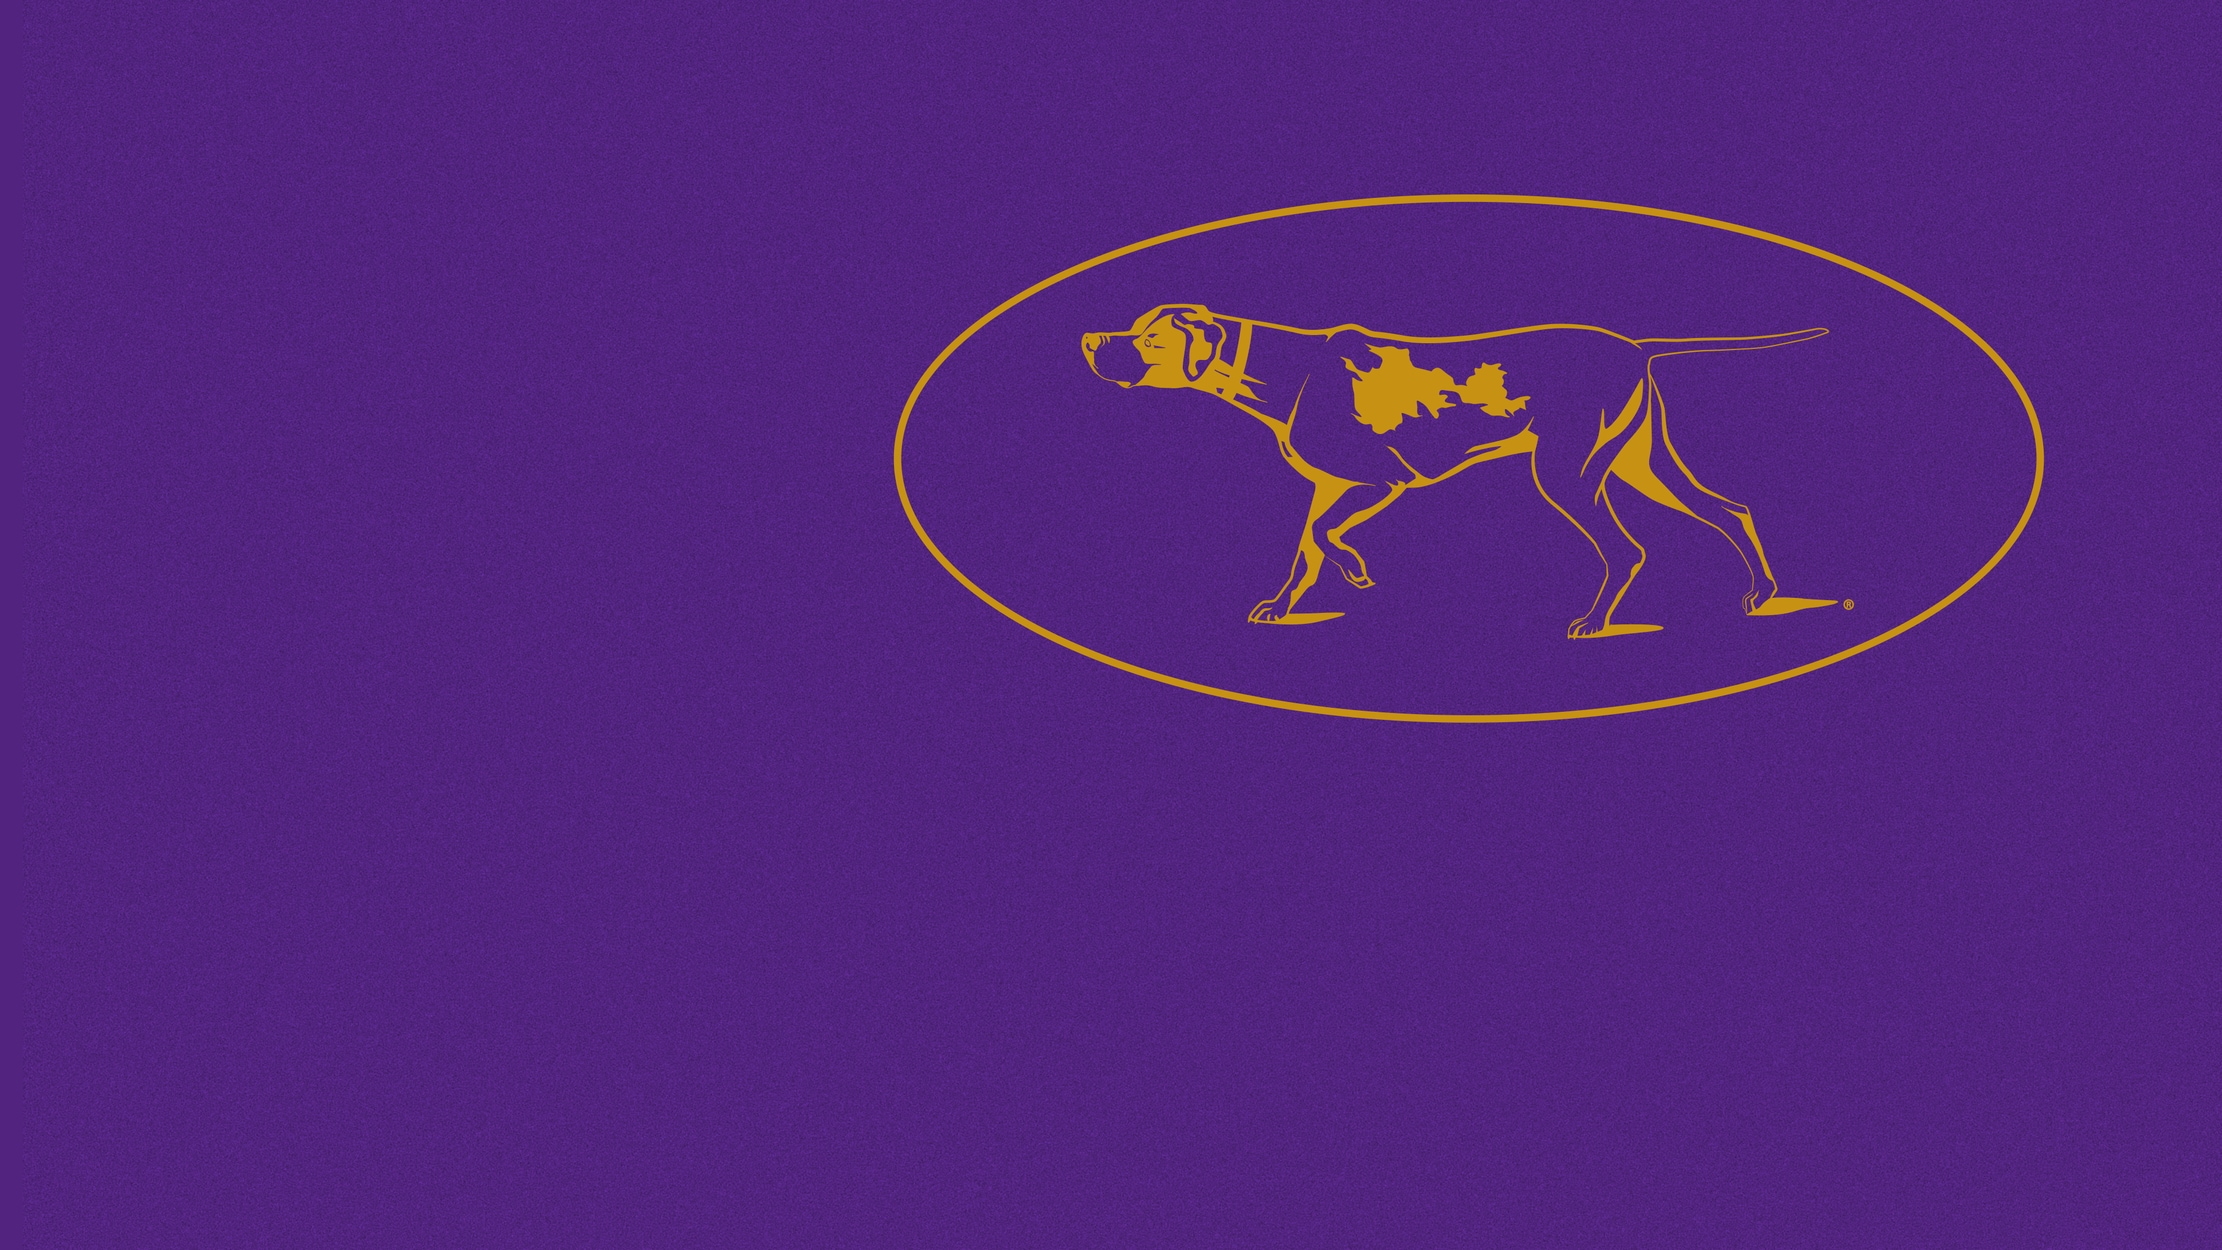 145th Westminster Kennel Club Dog Show Highlight Show seriesDetail